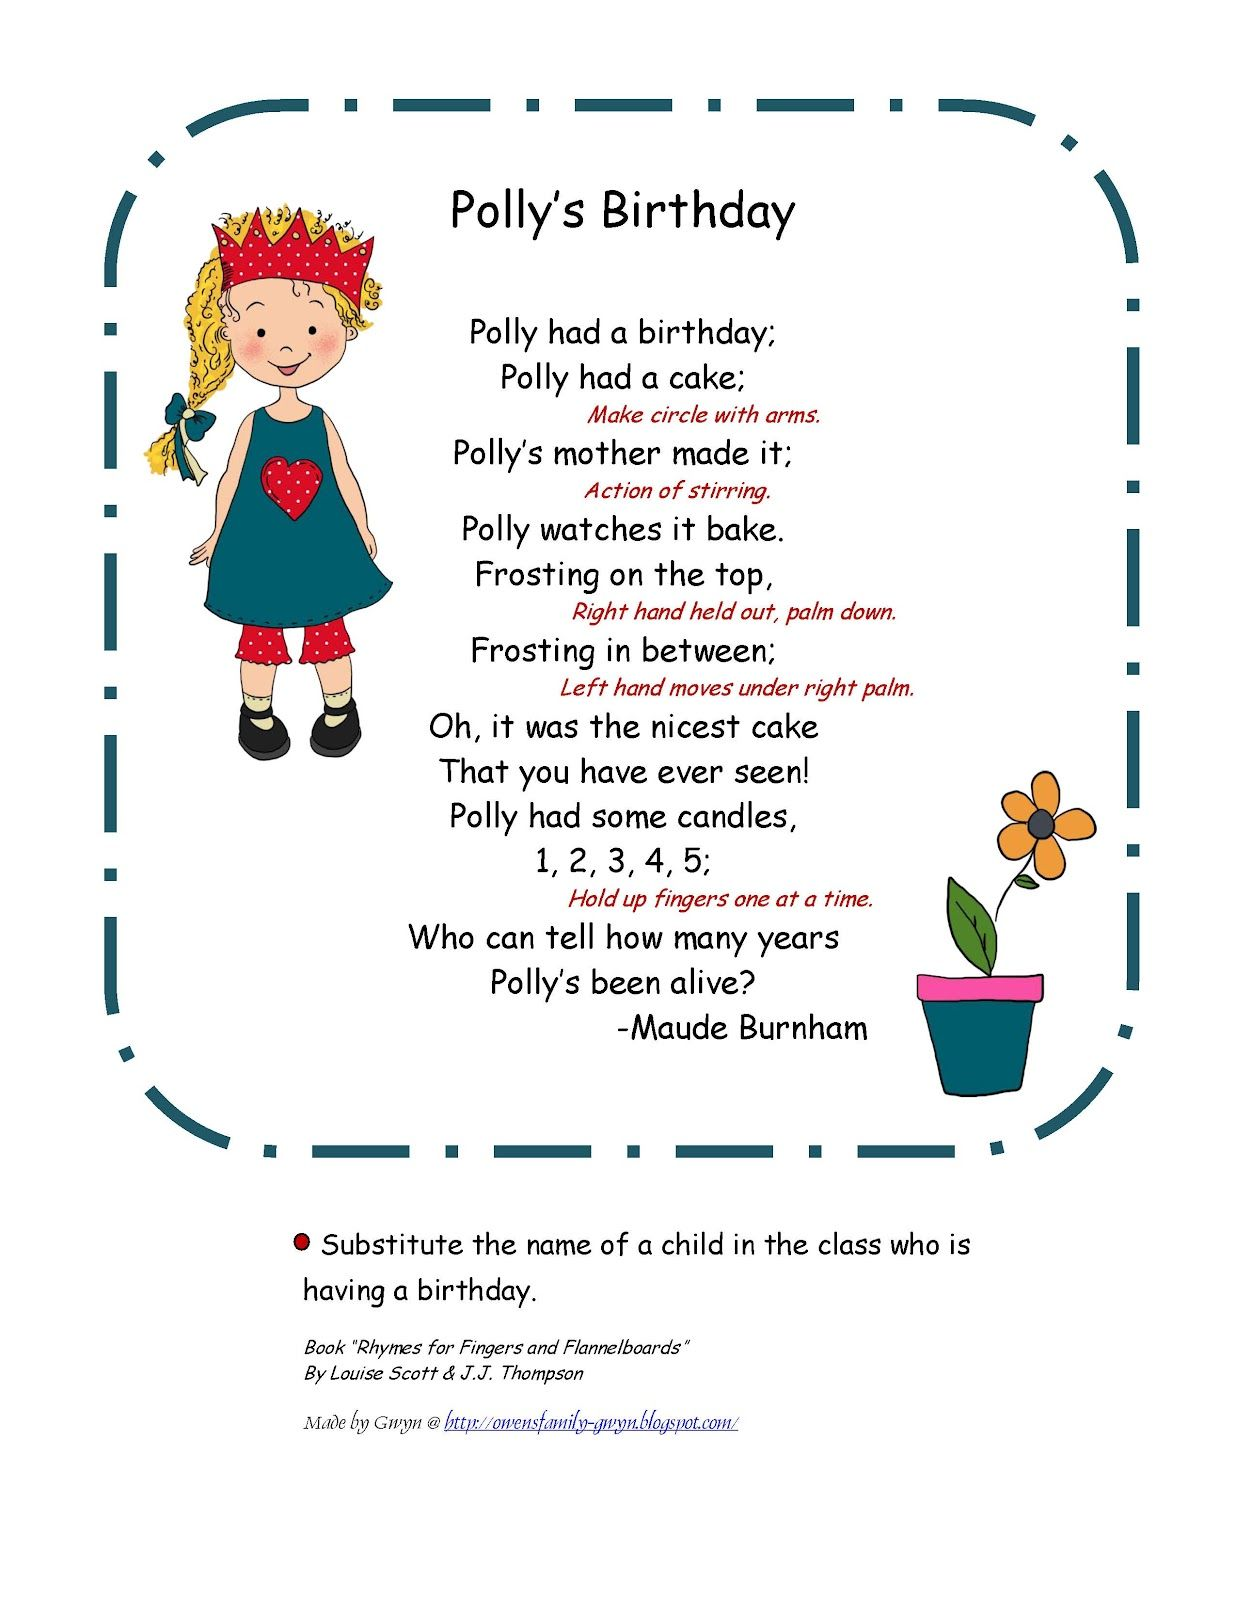 Preschool Printables Polly S Birthday Poem